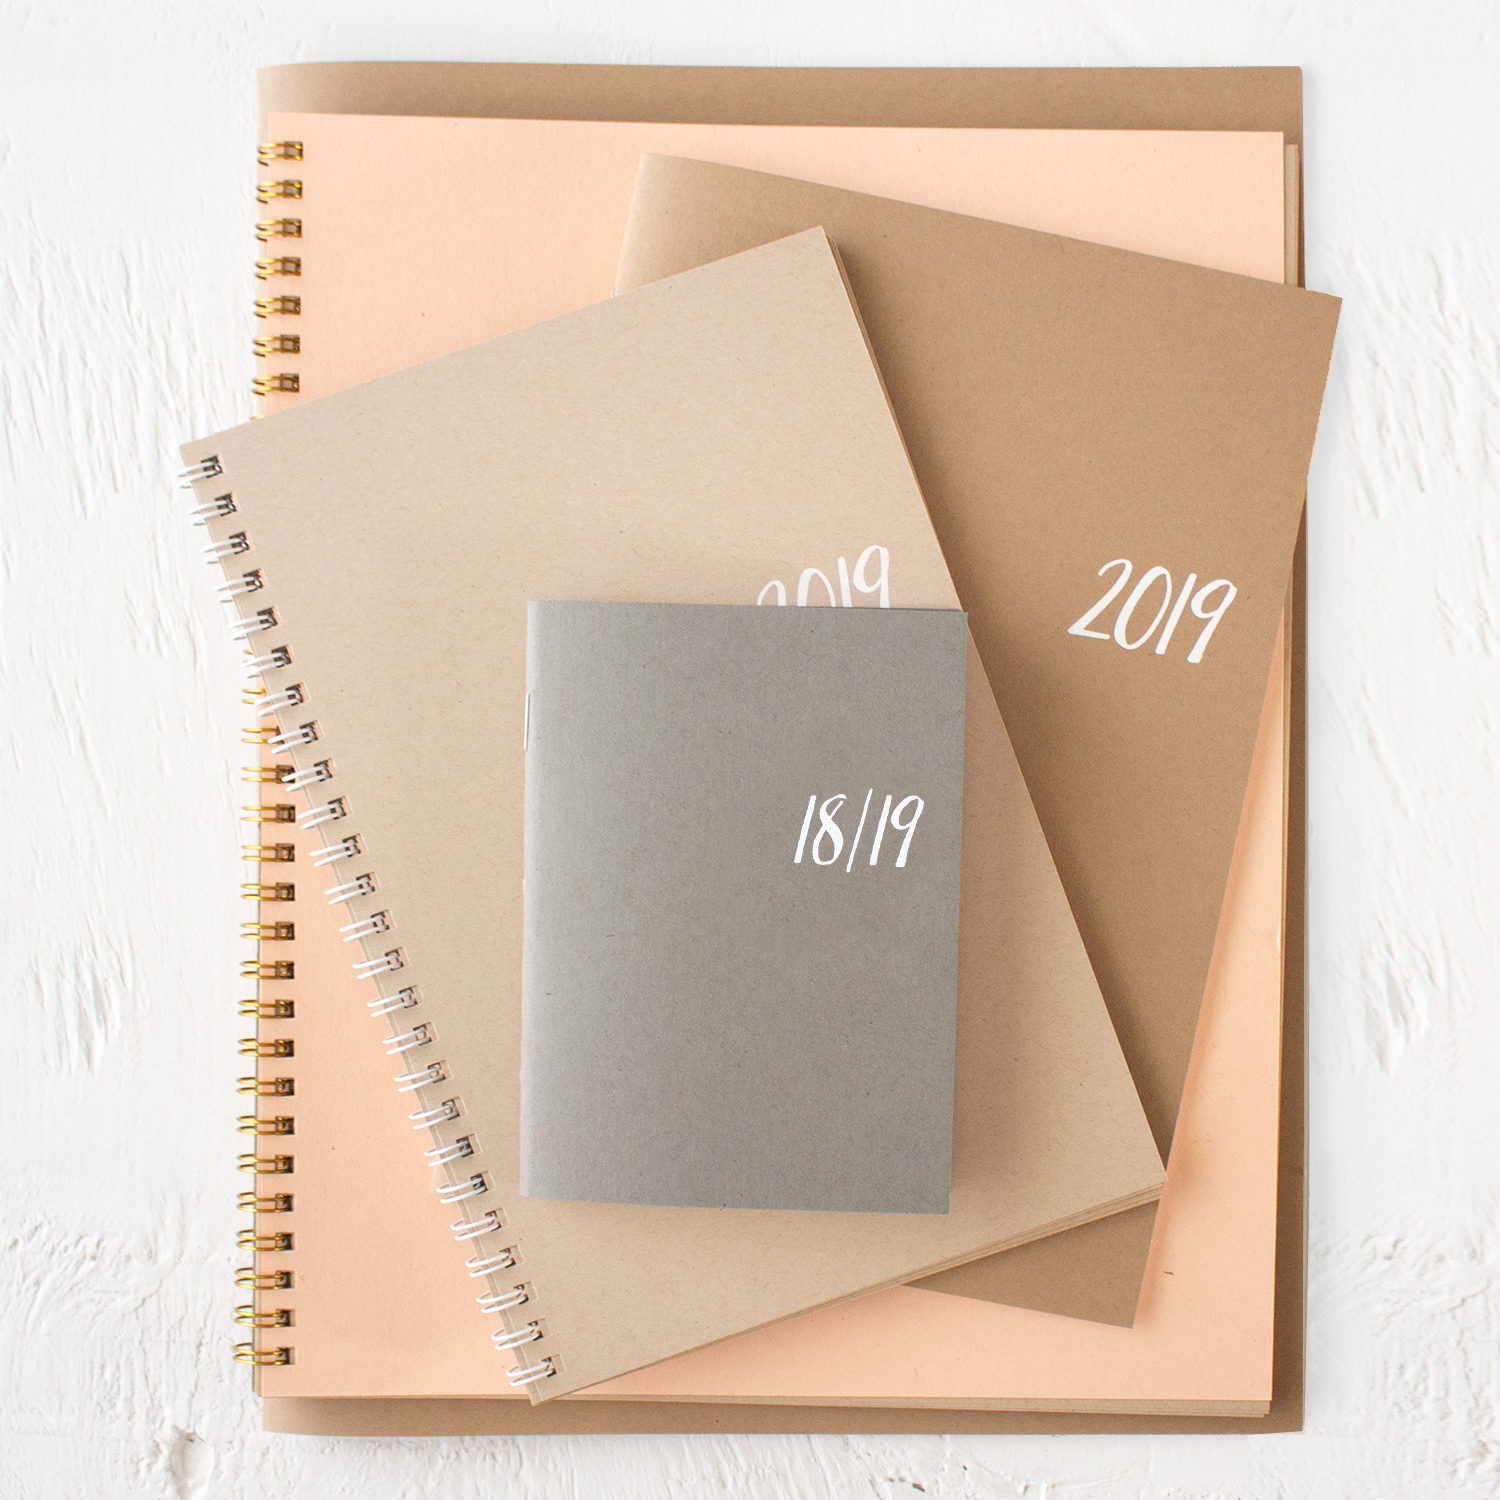 2019_all_basic_planners